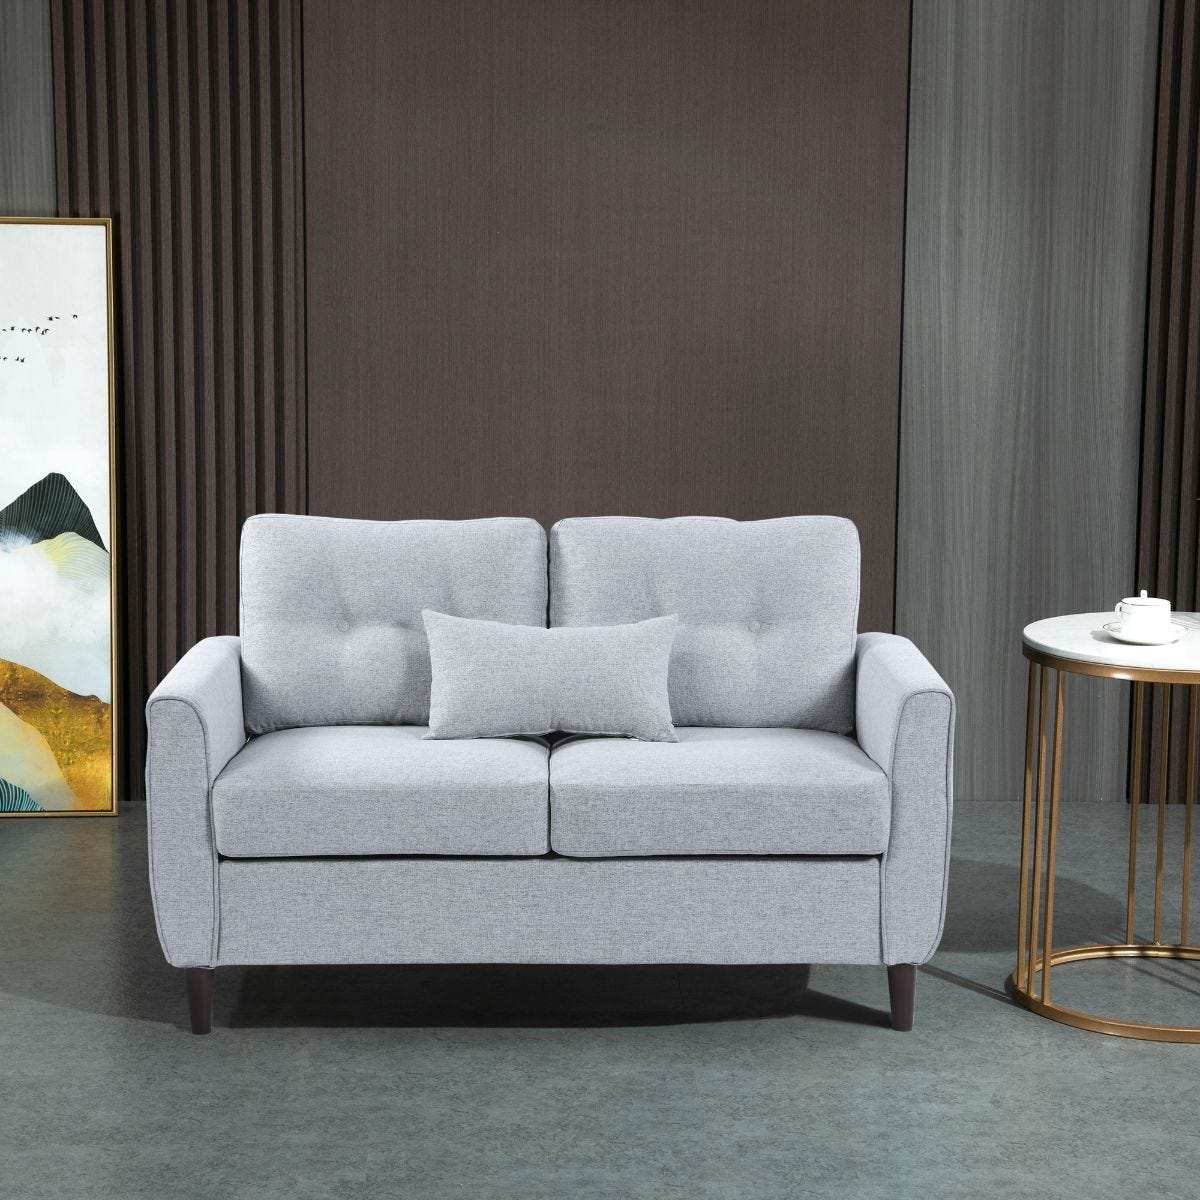 Two Seater Sofa Loveseat with Armrests Light Grey